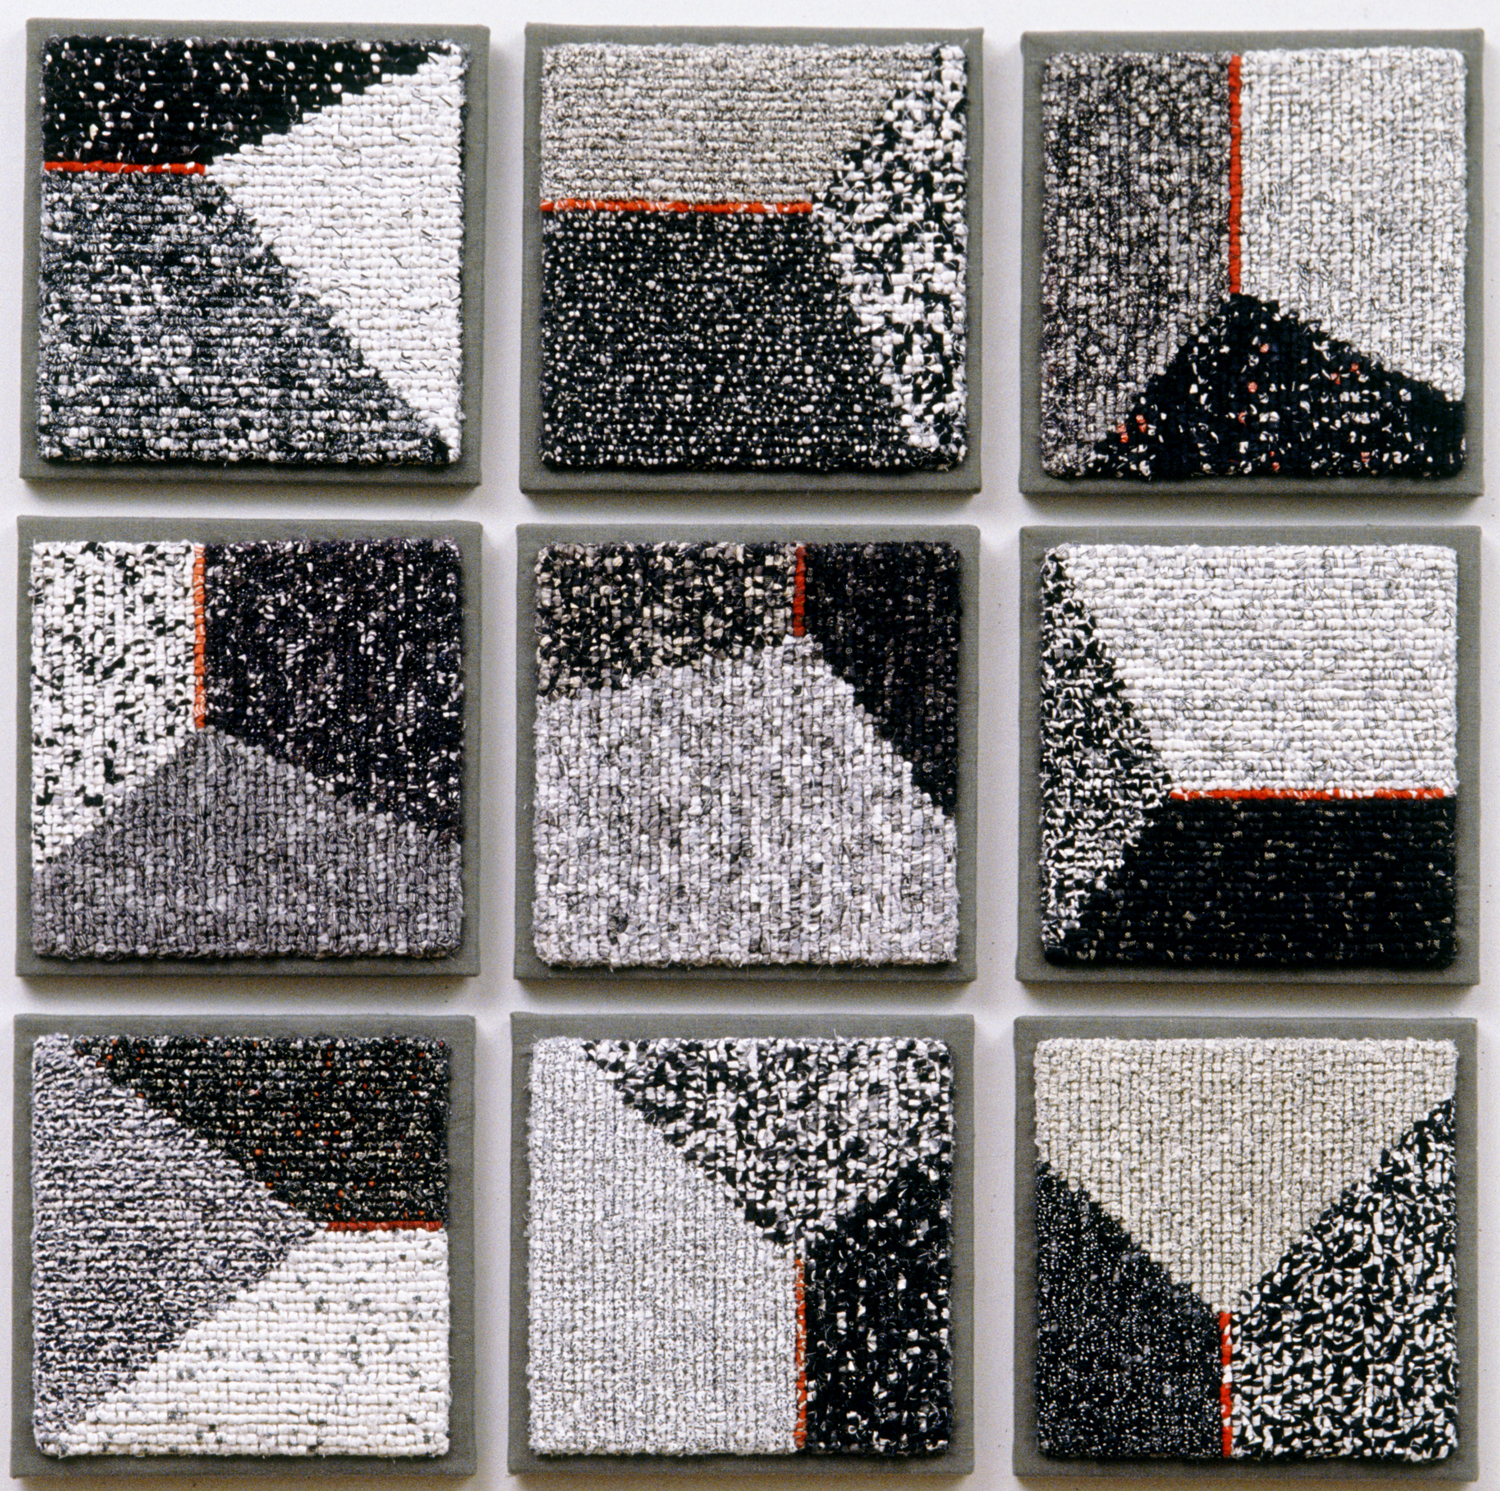 """3000-4. Triads, nine panels, each 12""""x12"""", hand hooked cottons & linens on mesh canvas, mounted on linen, canvas stretchers"""